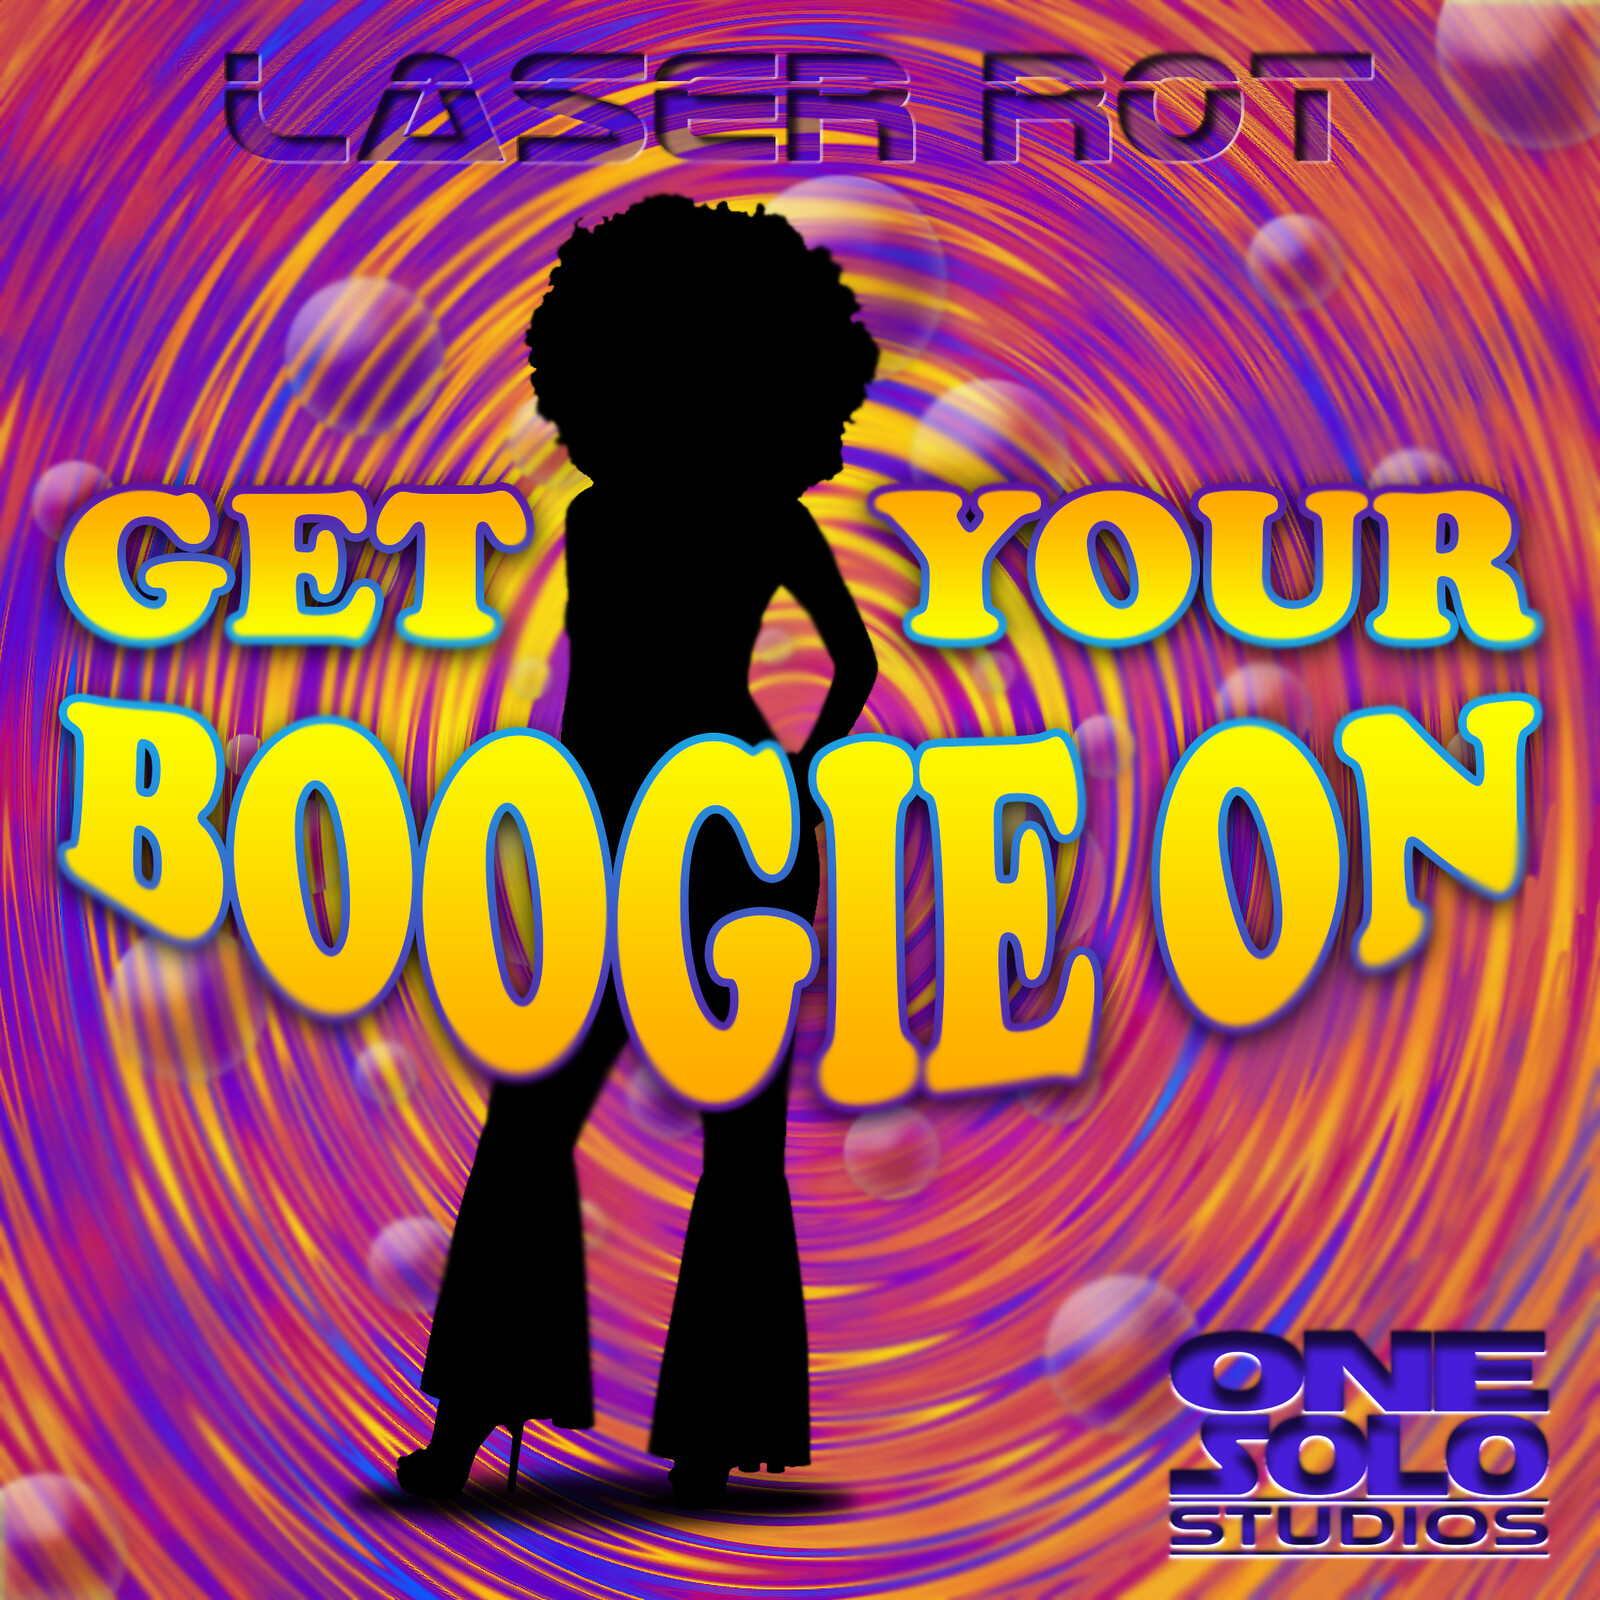 Get Your Boogie On (Album Cover Artwork)